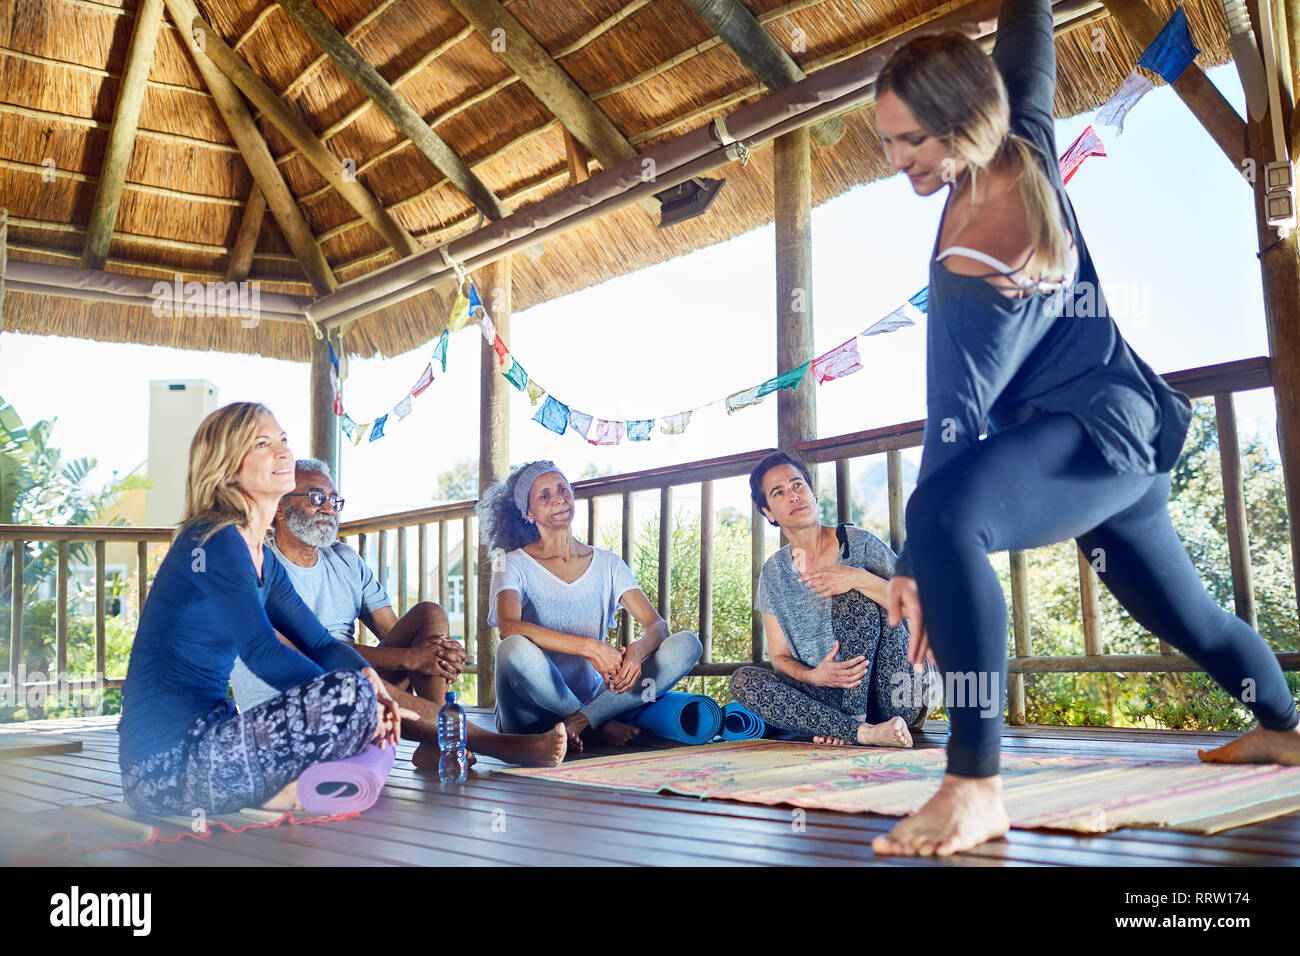 Female instructor demonstrating side angle pose in hut during yoga retreat - Stock Image